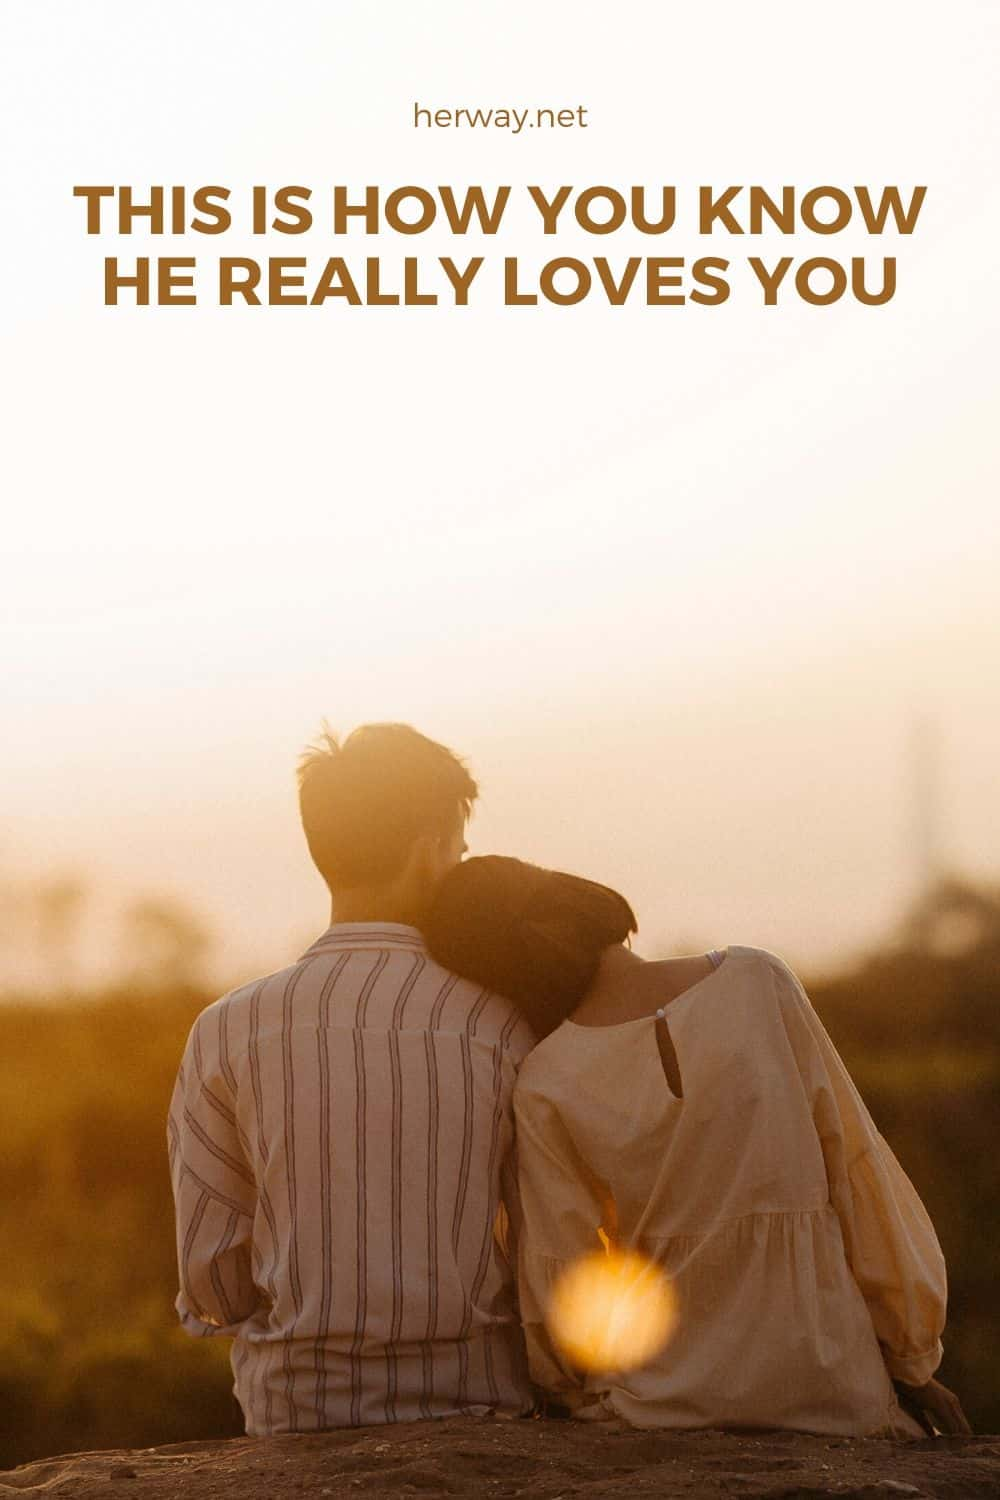 This Is How You Know He Really Loves You